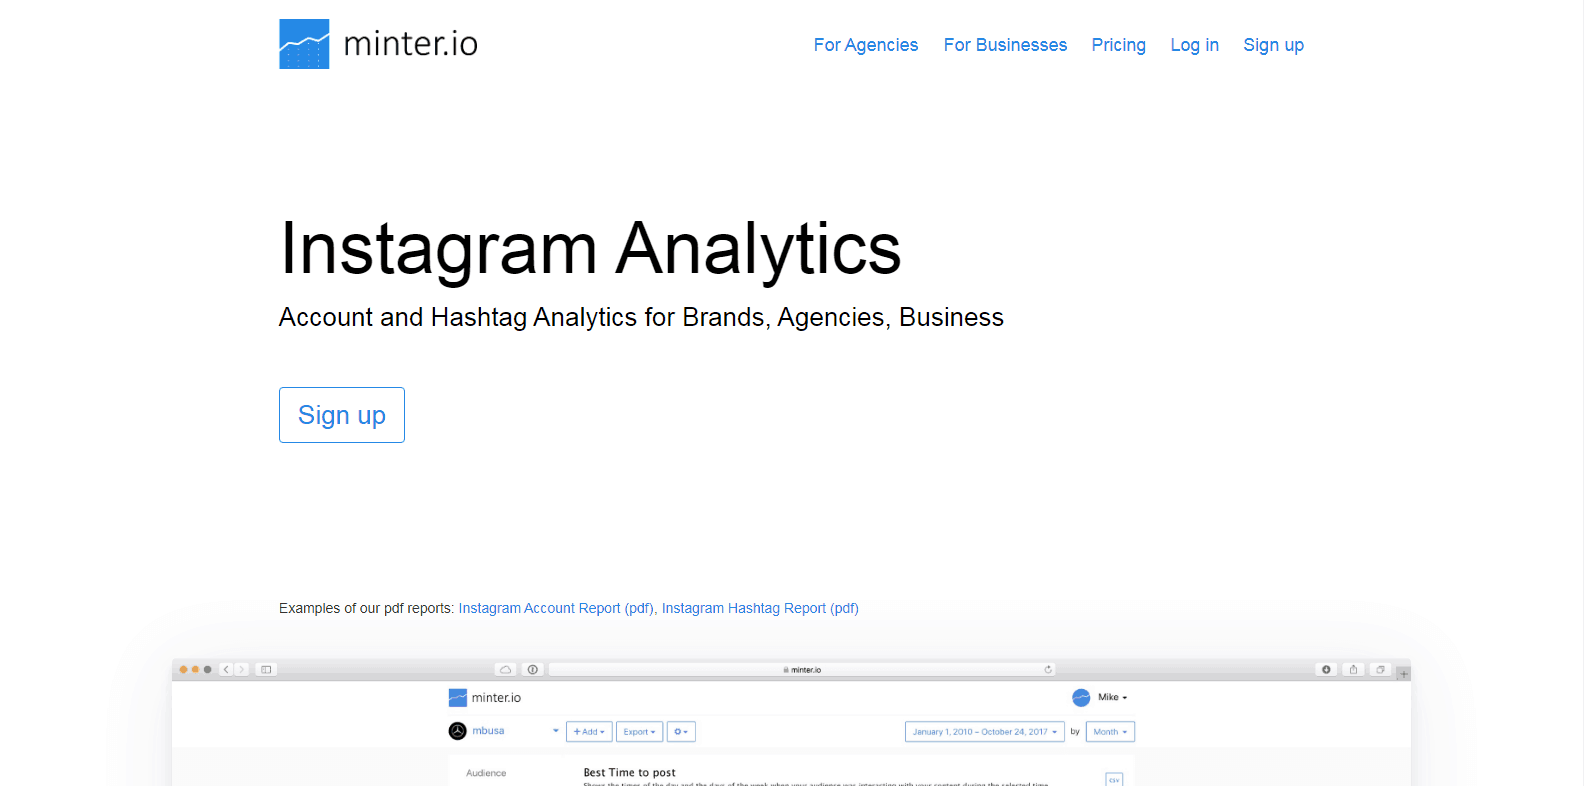 Minter.io Instagram Analytics Tools